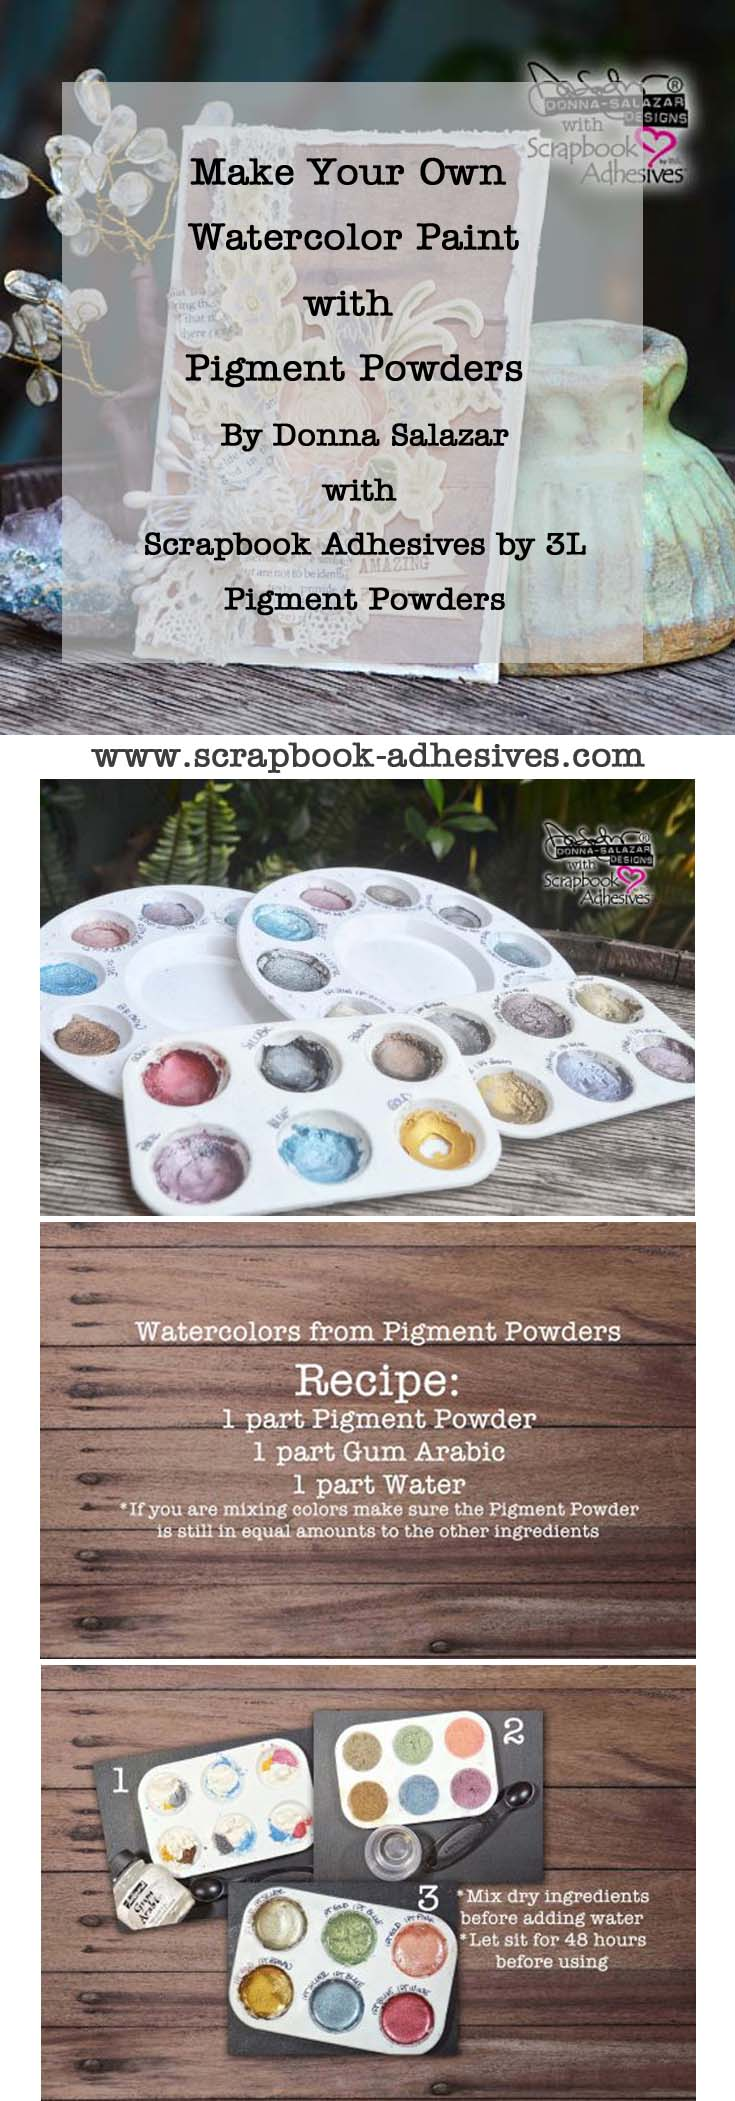 How to make Pigment Powder Watercolor paints